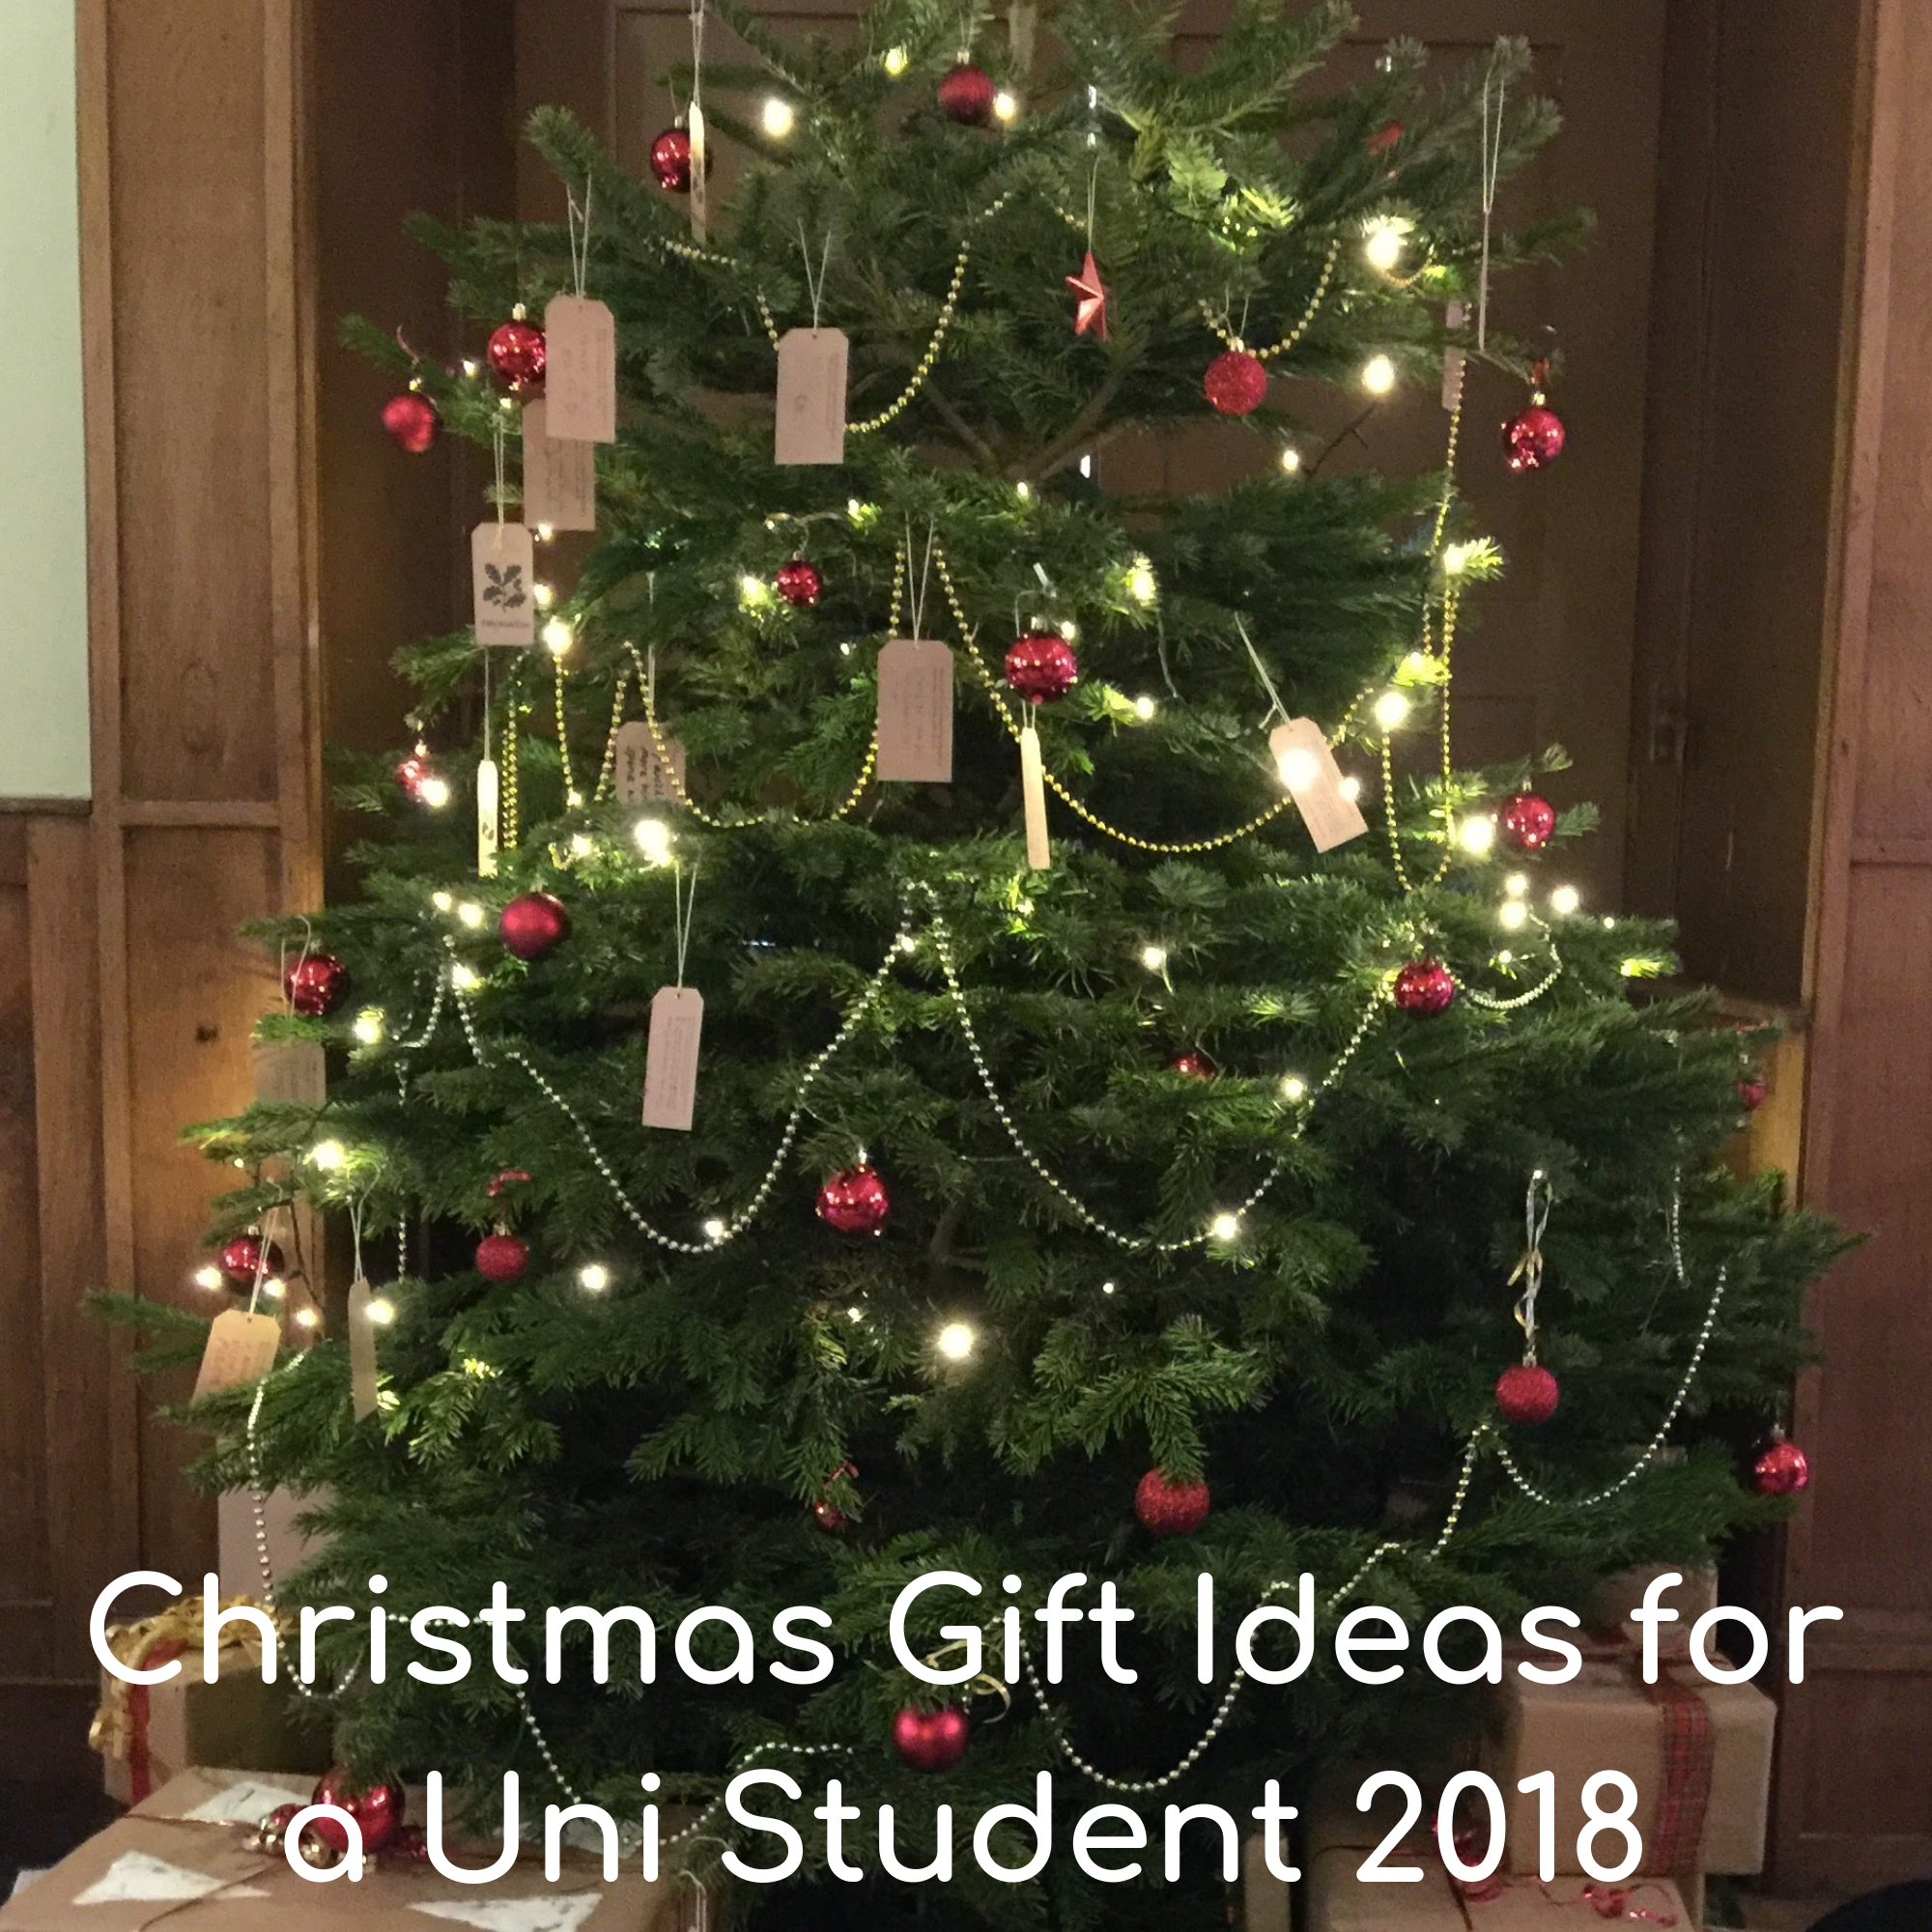 Christmas Gift Ideas for a Uni Student 2018